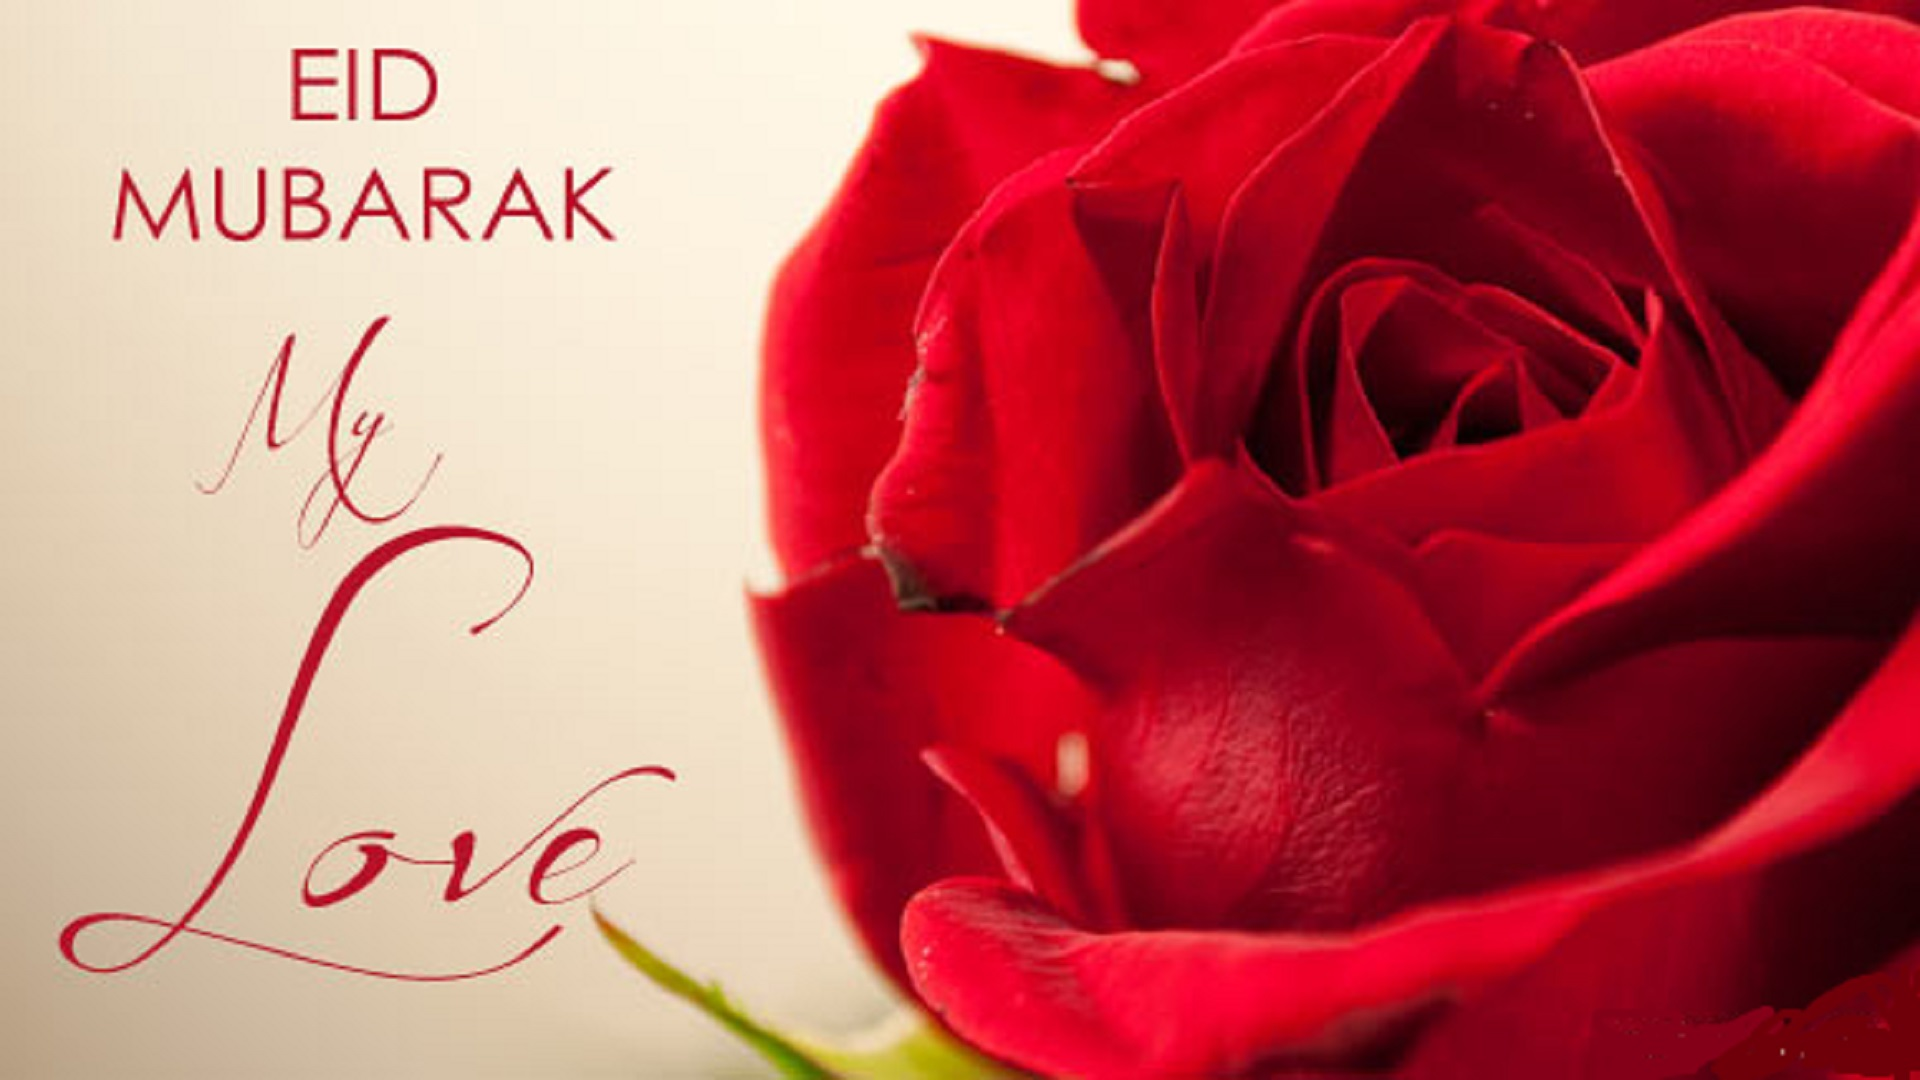 eid-mubarak-sweetheart-free-hd-wallpapers